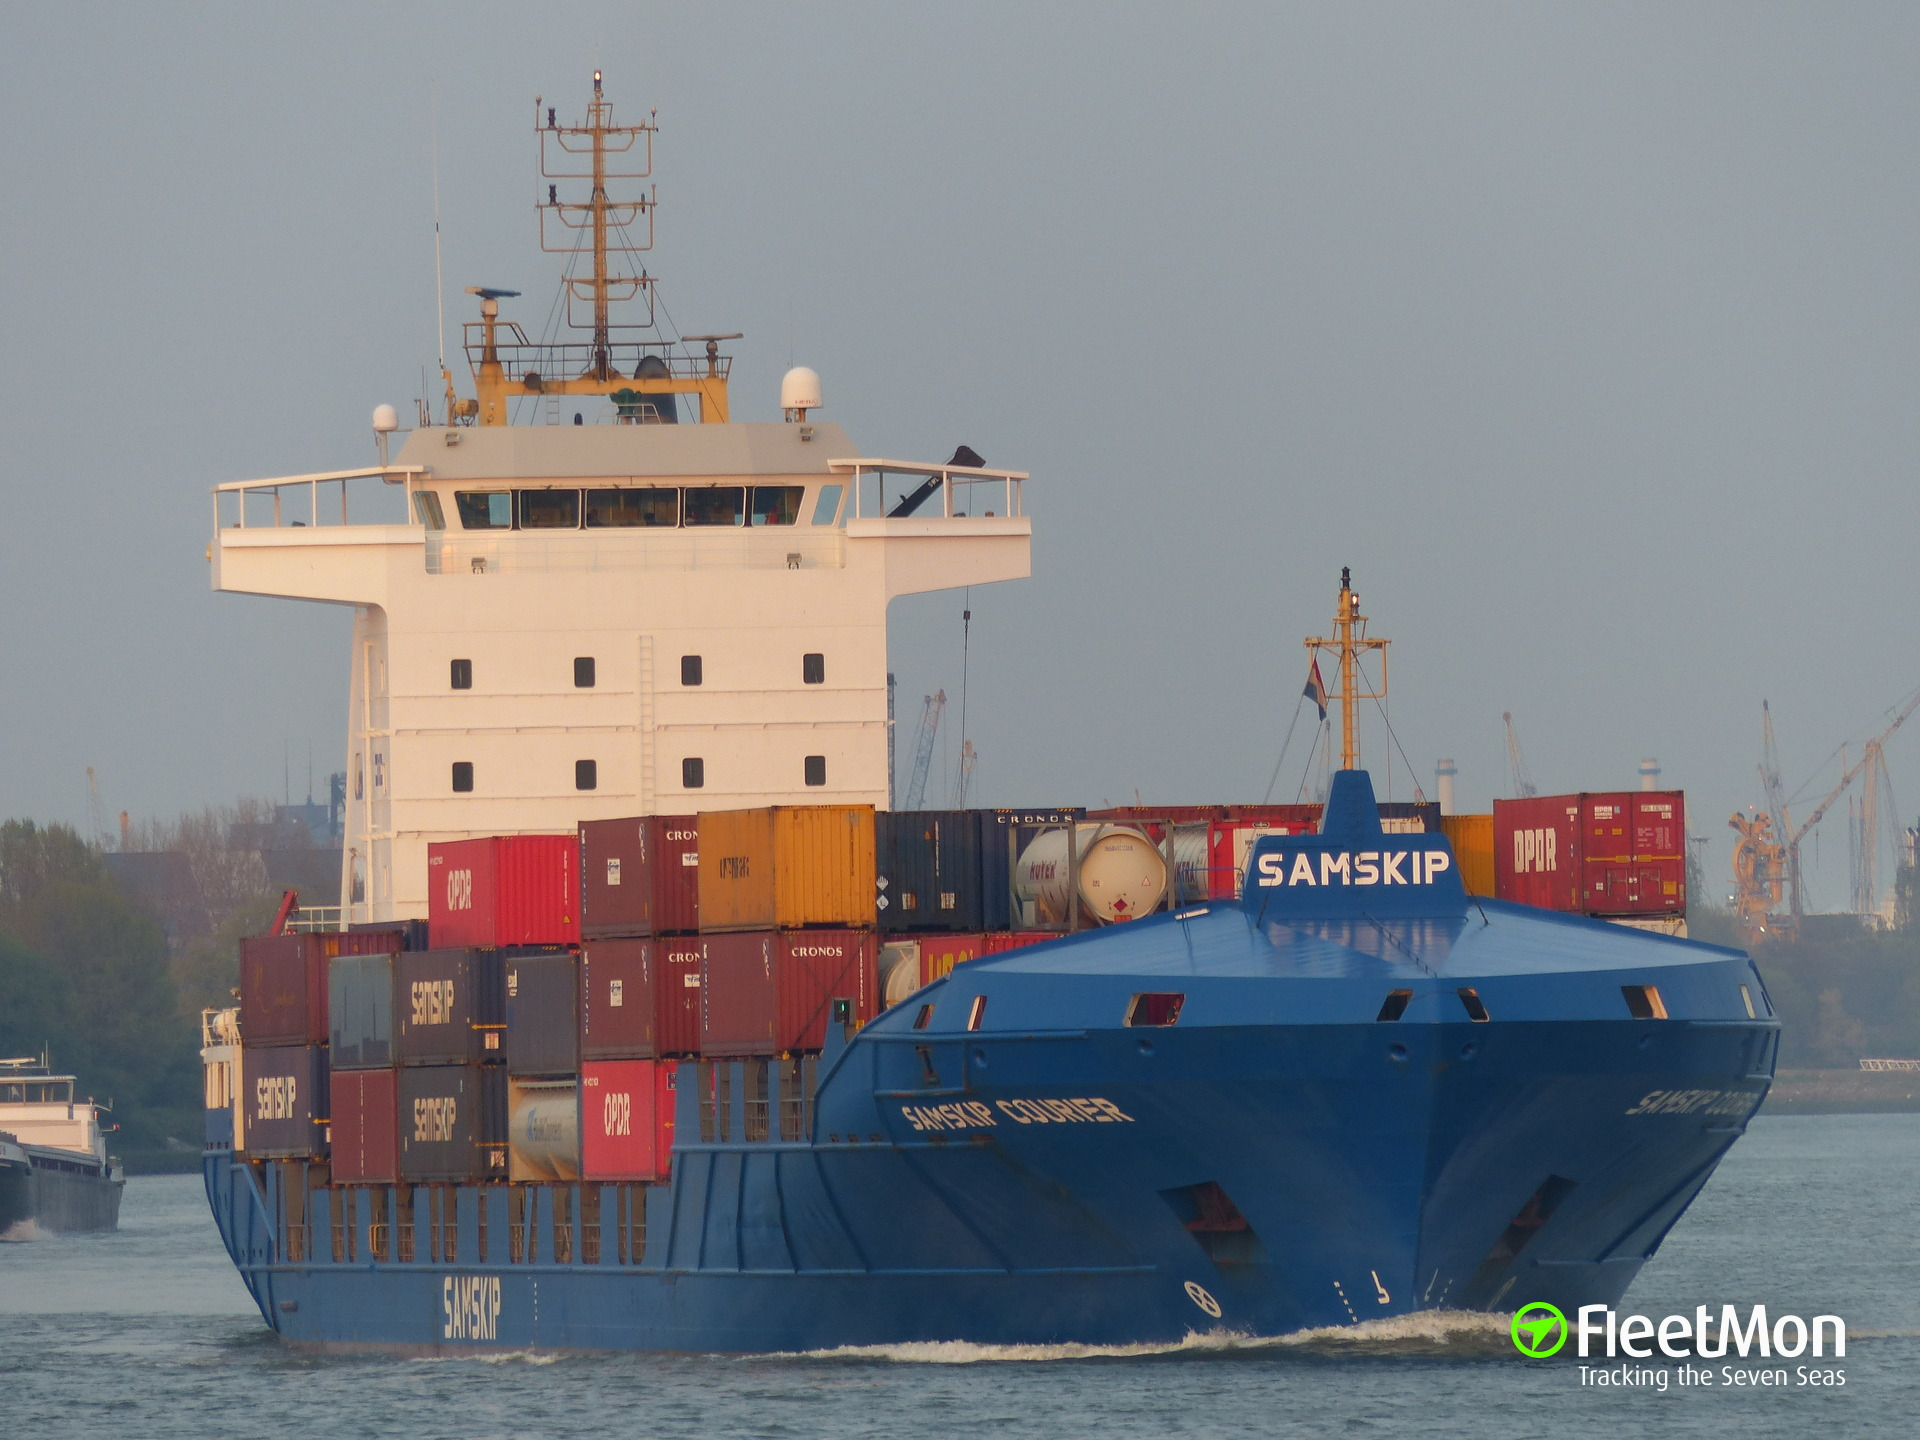 Container ship SAMSKIP COURIER collided with tug in English Canal